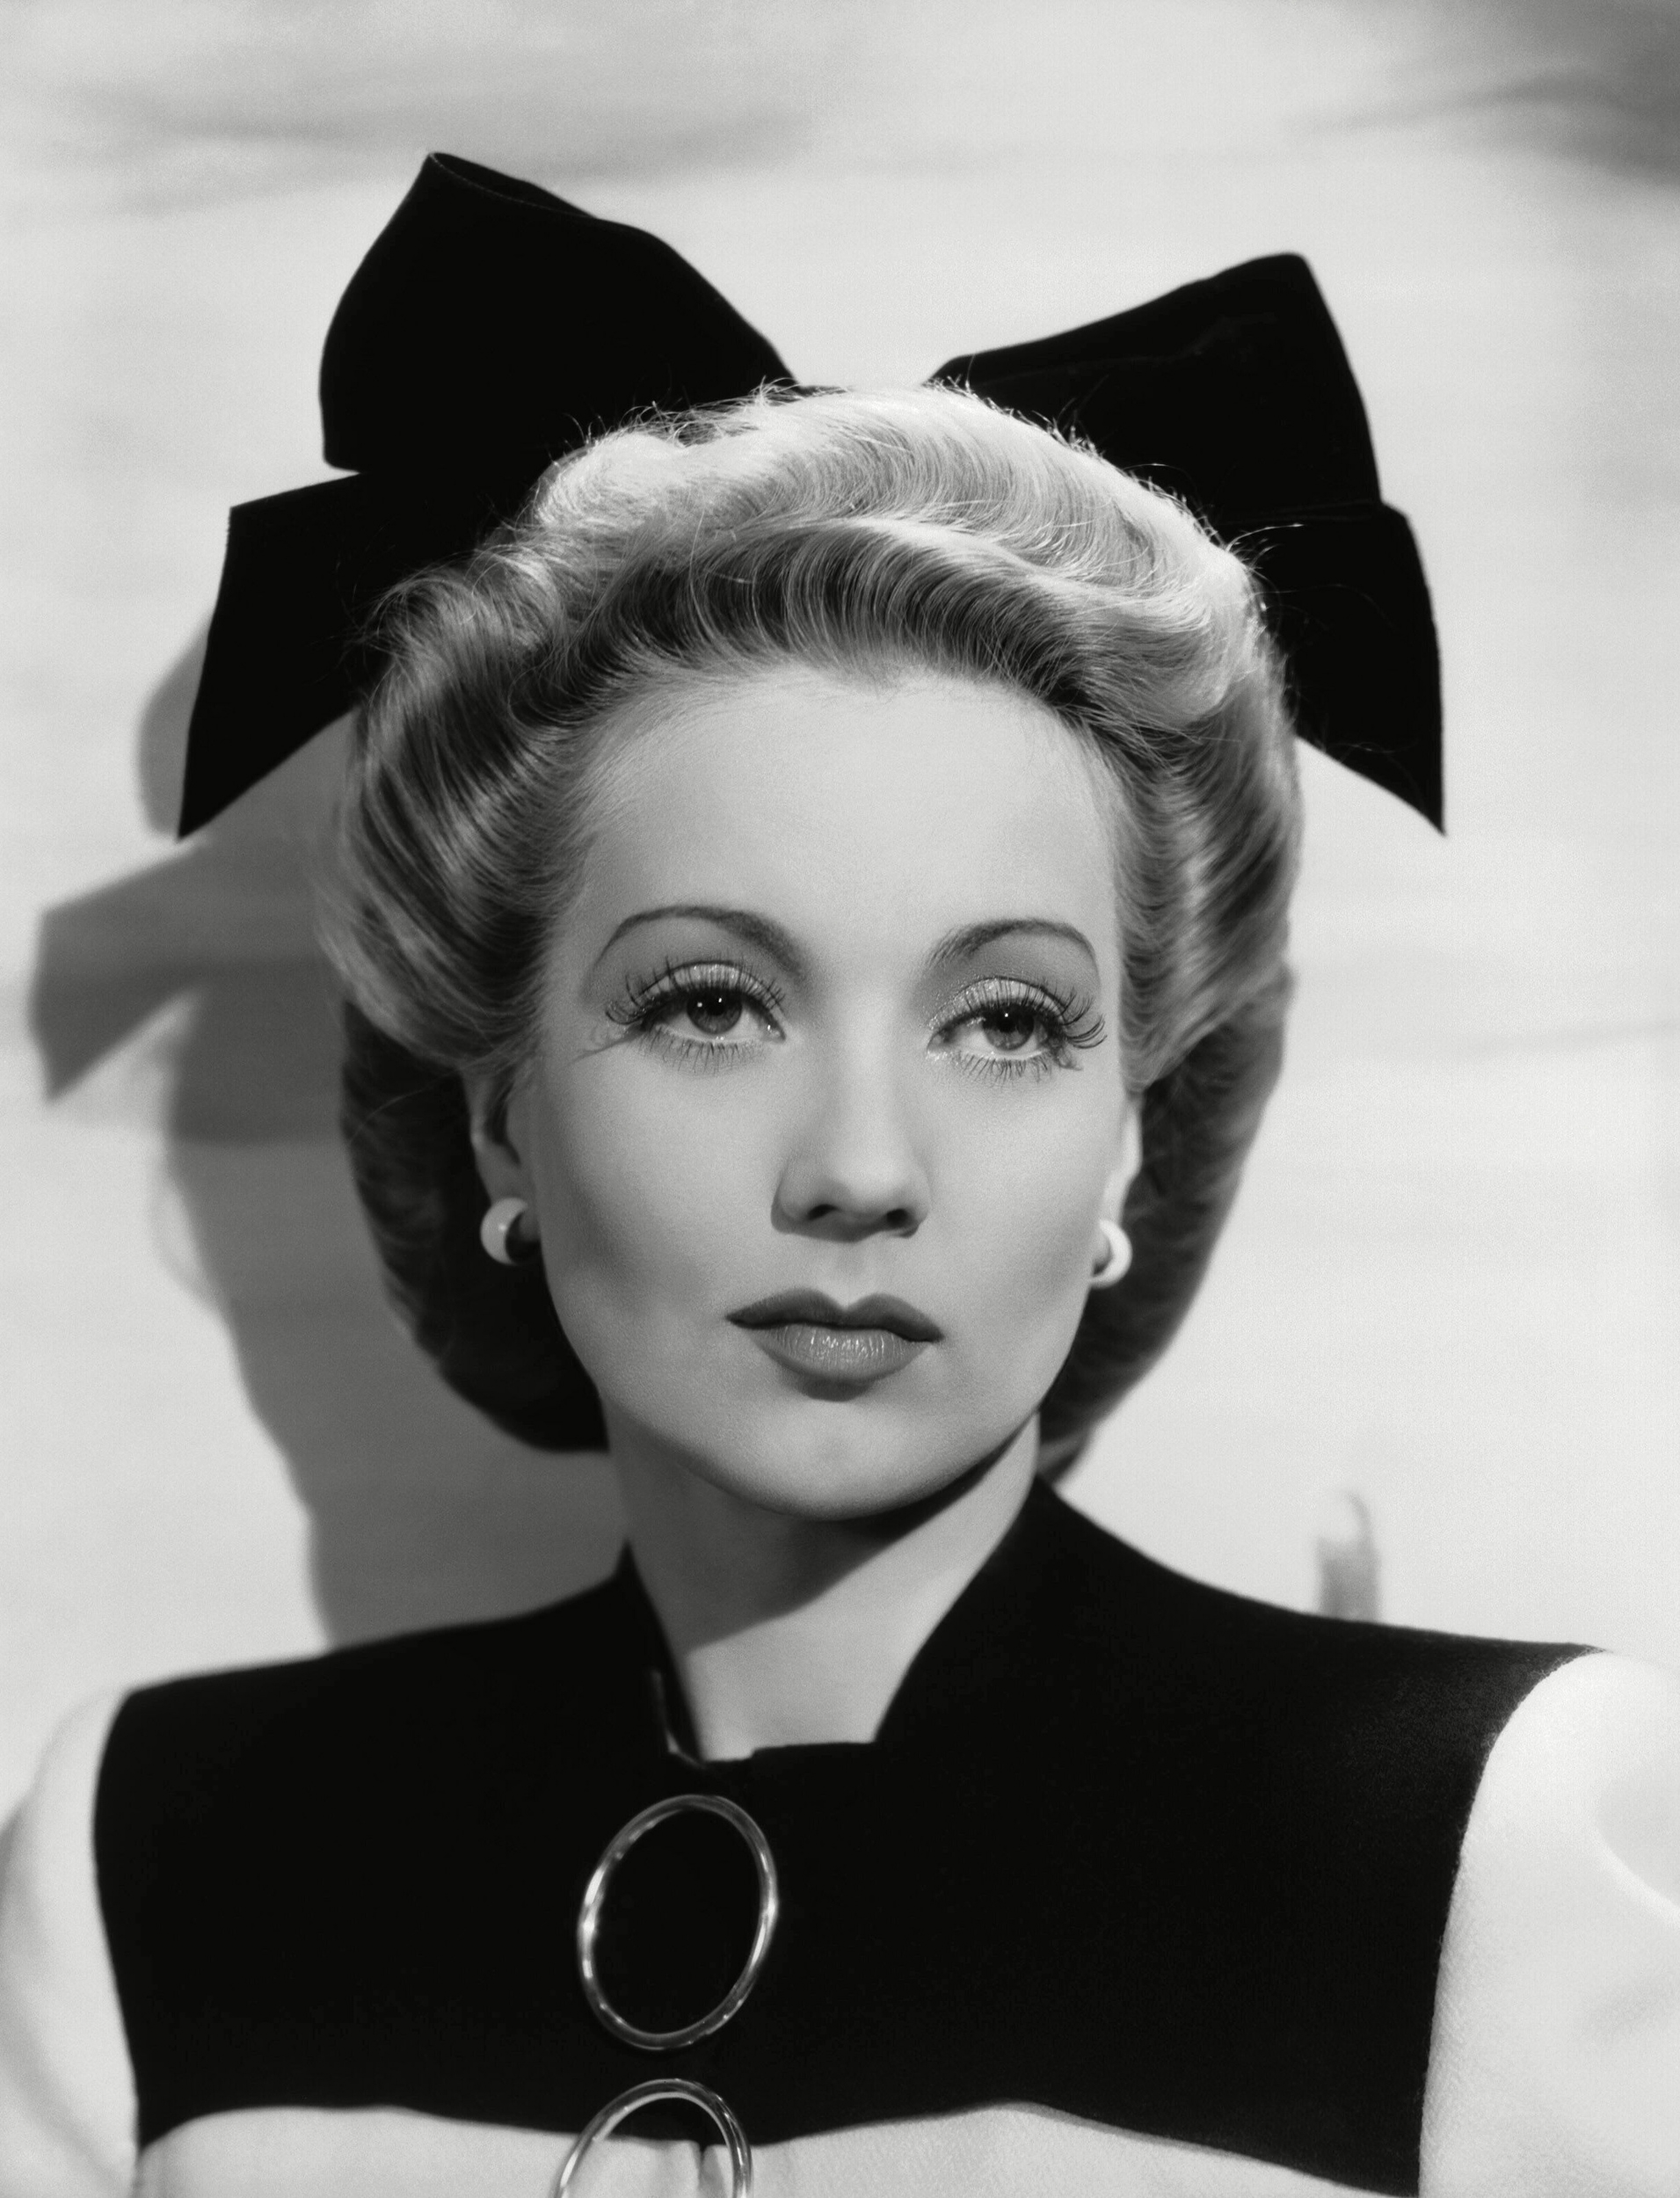 Ann Sothern wwwdoctormacrocomImagesSothern20AnnAnnexAn